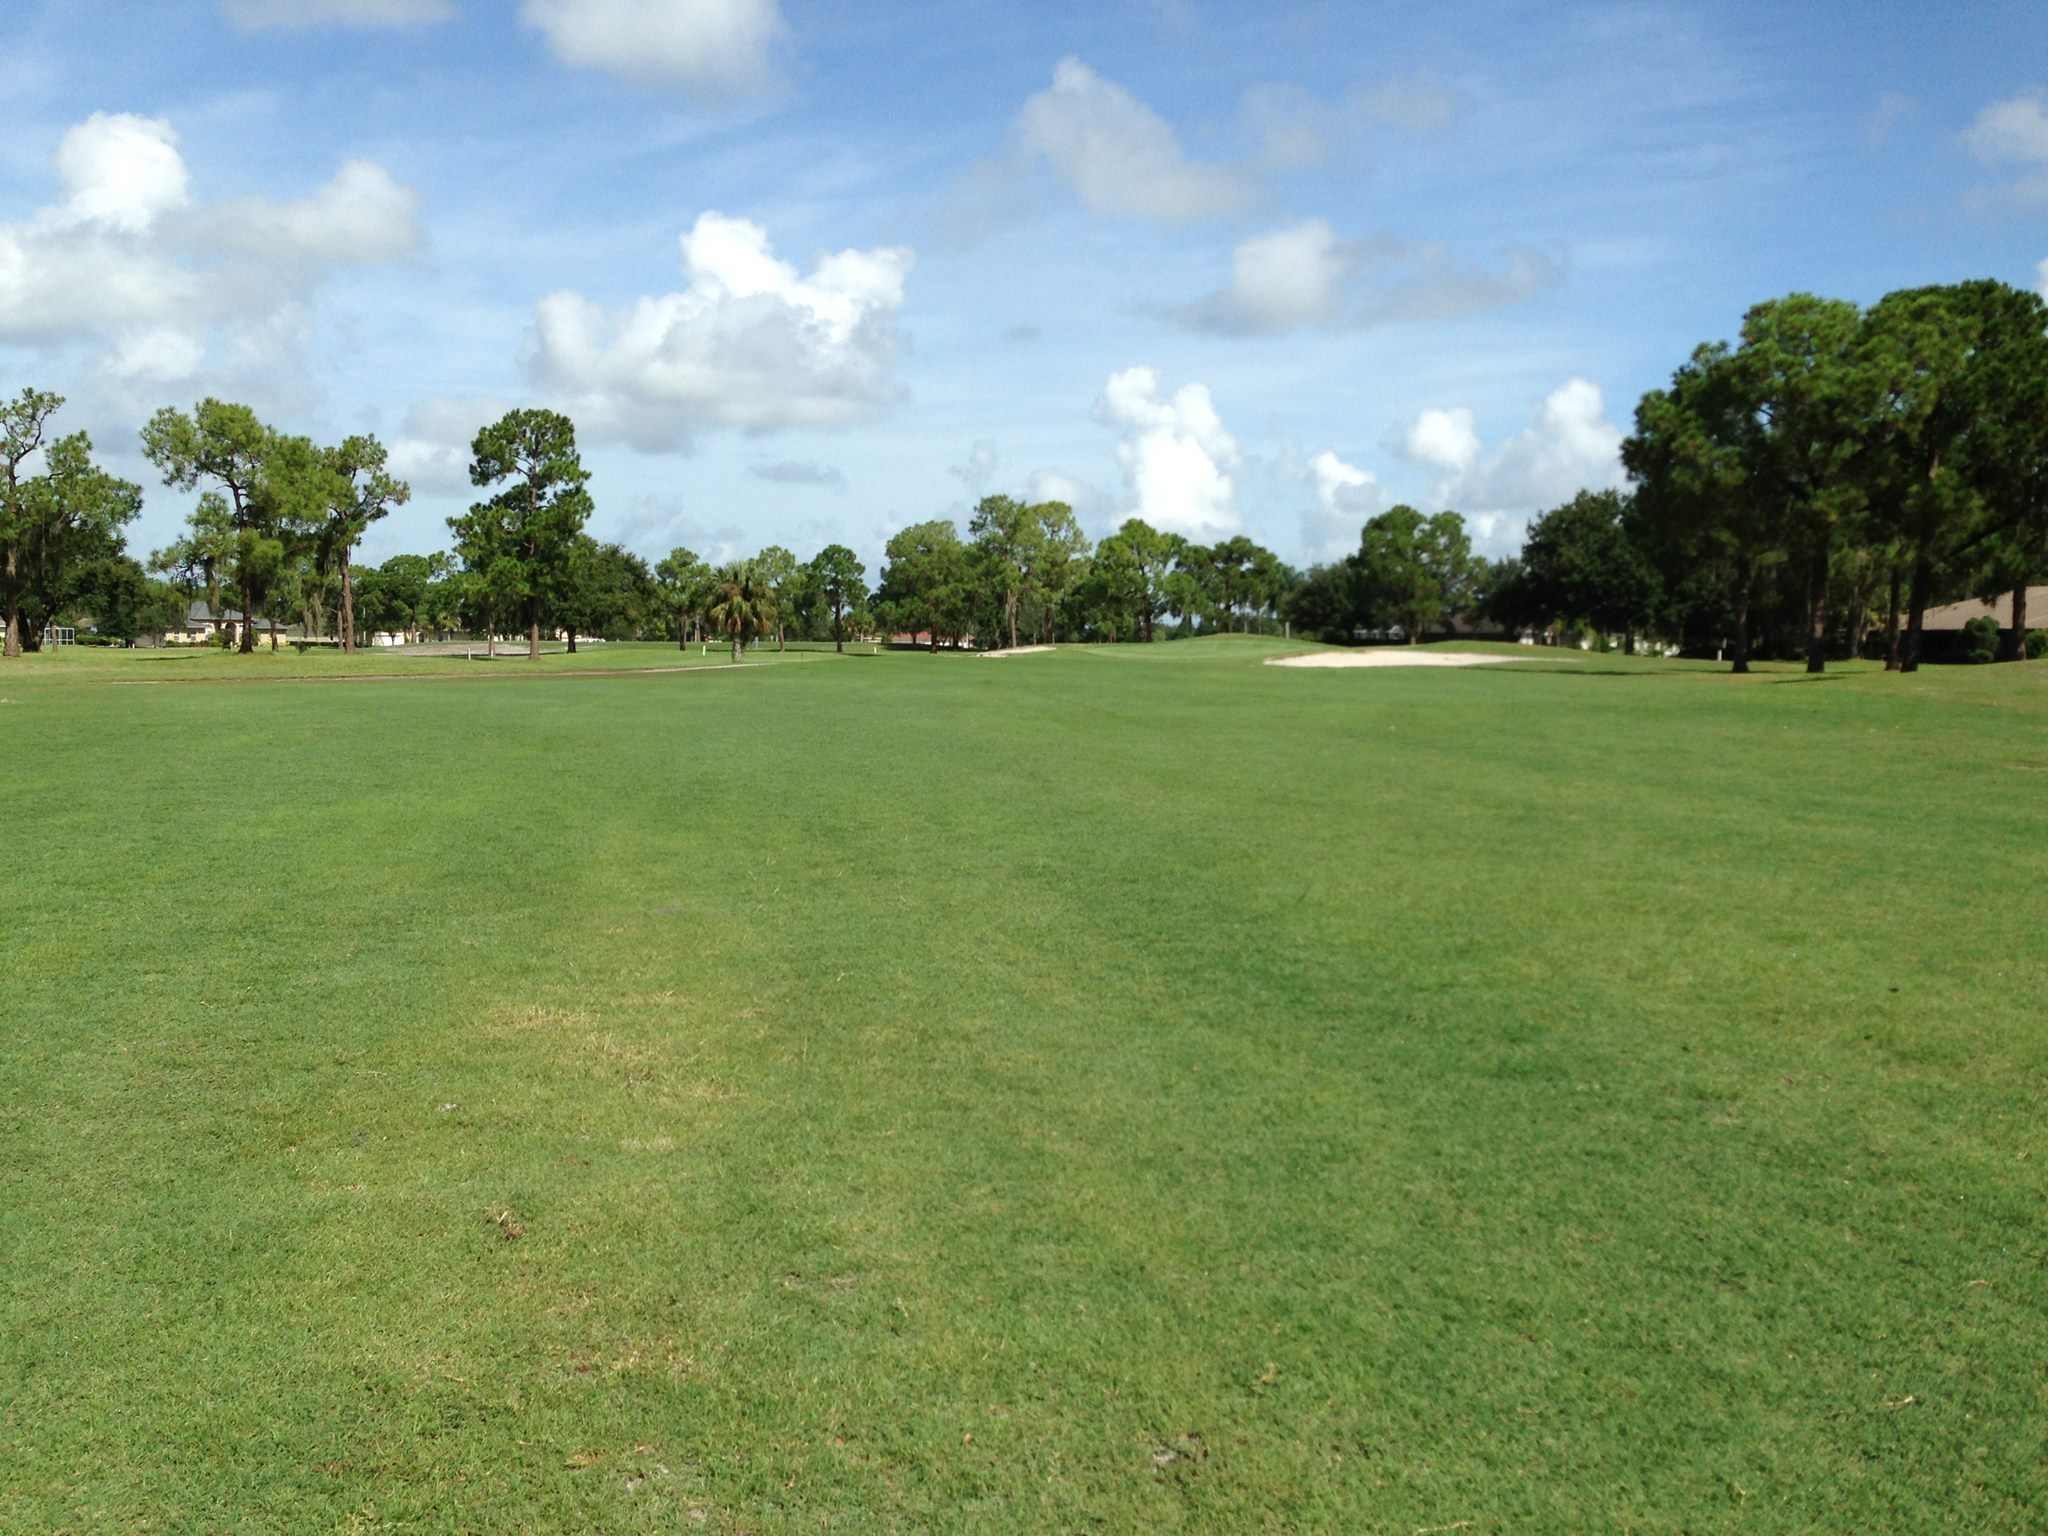 Overview of golf course named Cypress Woods Golf and Country Club